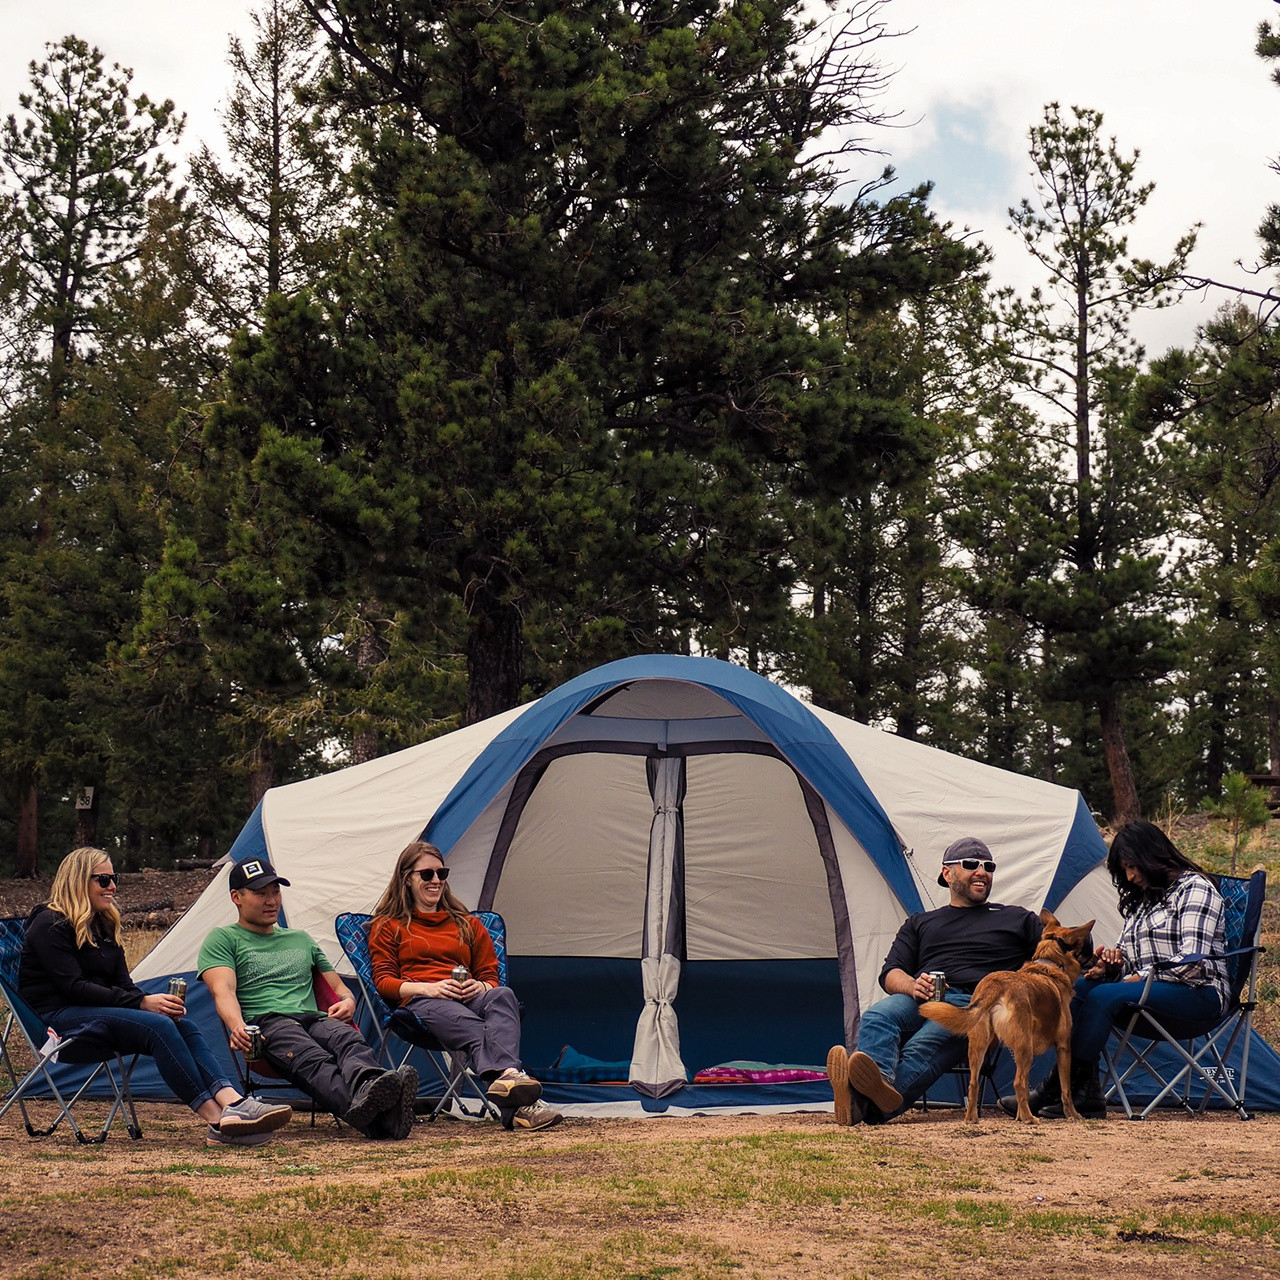 Group of campers in front of tent